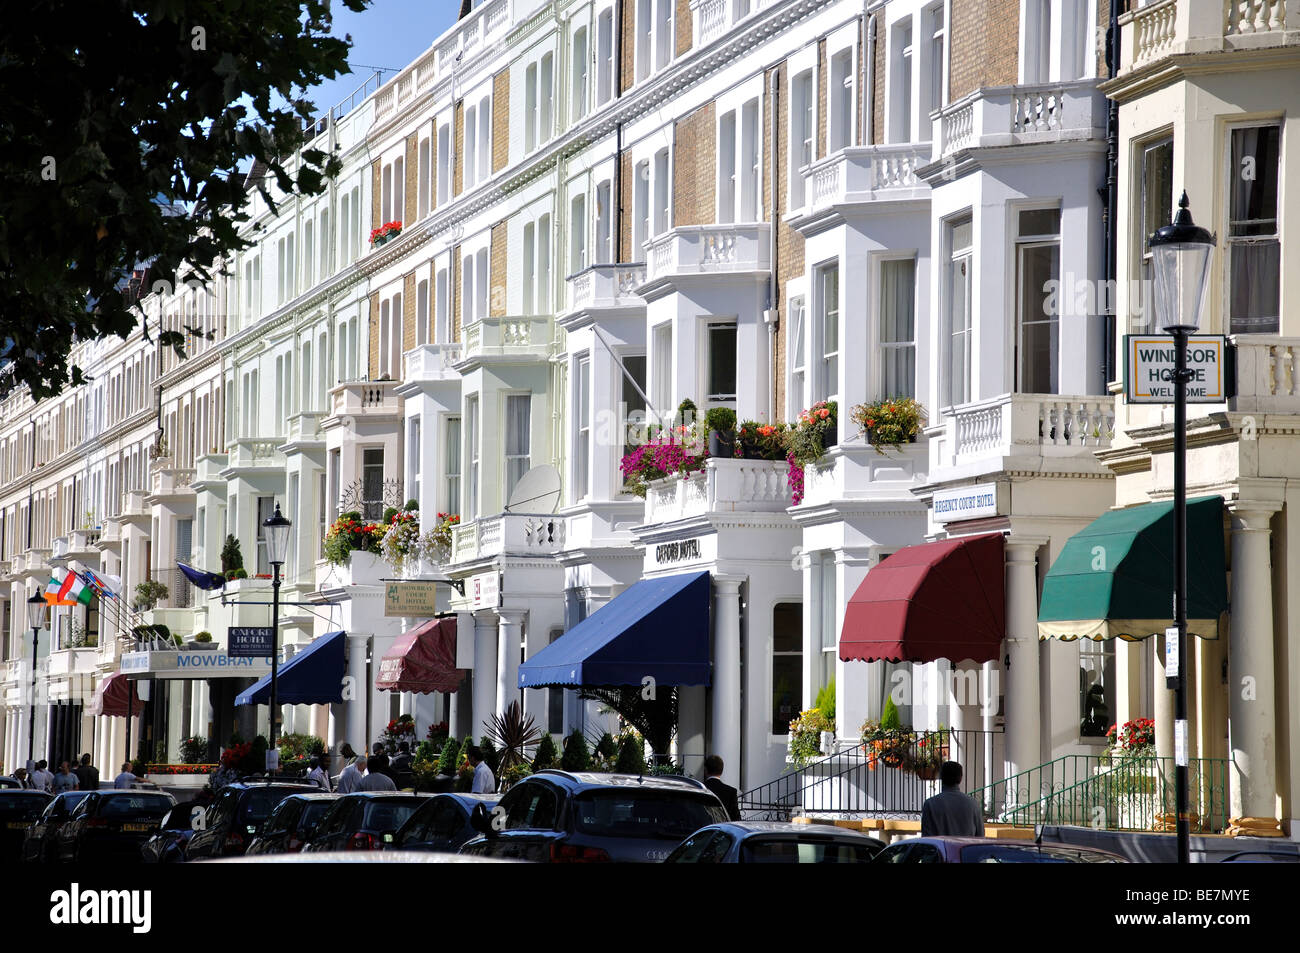 Hotels In Earls Court London Uk